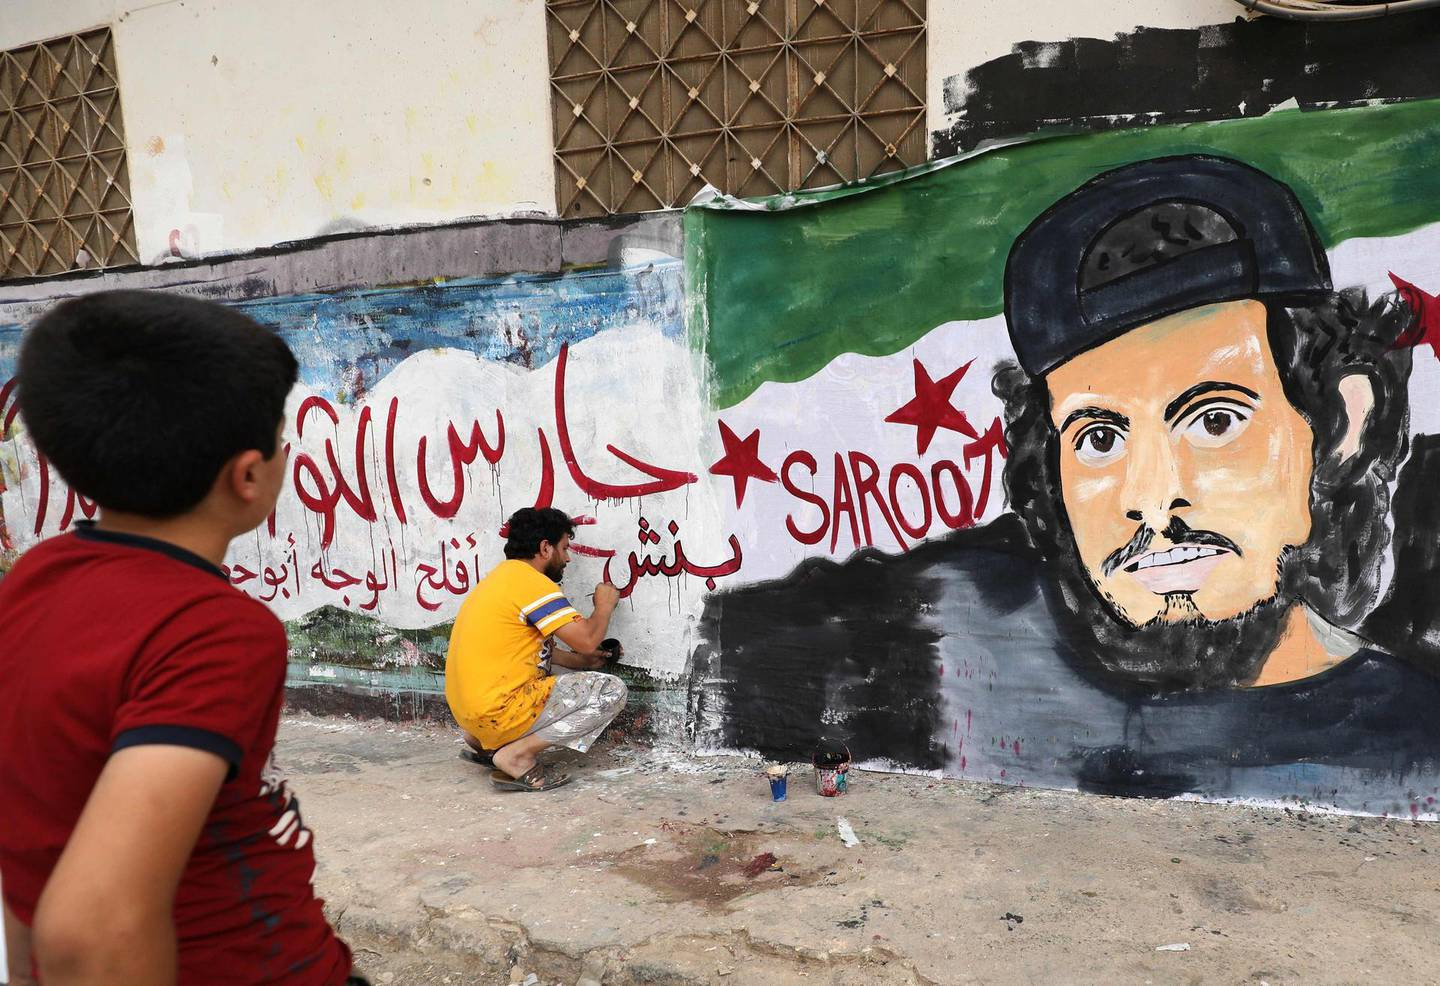 TOPSHOT - A child watches as a local artist works on a mural painting showing the late Syrian rebel fighter Abdel-Basset al-Sarout in the town of Binnish in the jihadist-held northern Idlib province on June 8, 2019. The Syrian goalkeeper turner rebel fighter who starred in an award-winning documentary died of his wounds today aged 27 after fighting regime forces in northwest Syria, a monitor and his faction said. Al-Sarout was a goalkeeper from the central city of Homs, who became its most popular singer of protest songs after Syrian uprising broke out in March 2011.  / AFP / OMAR HAJ KADOUR